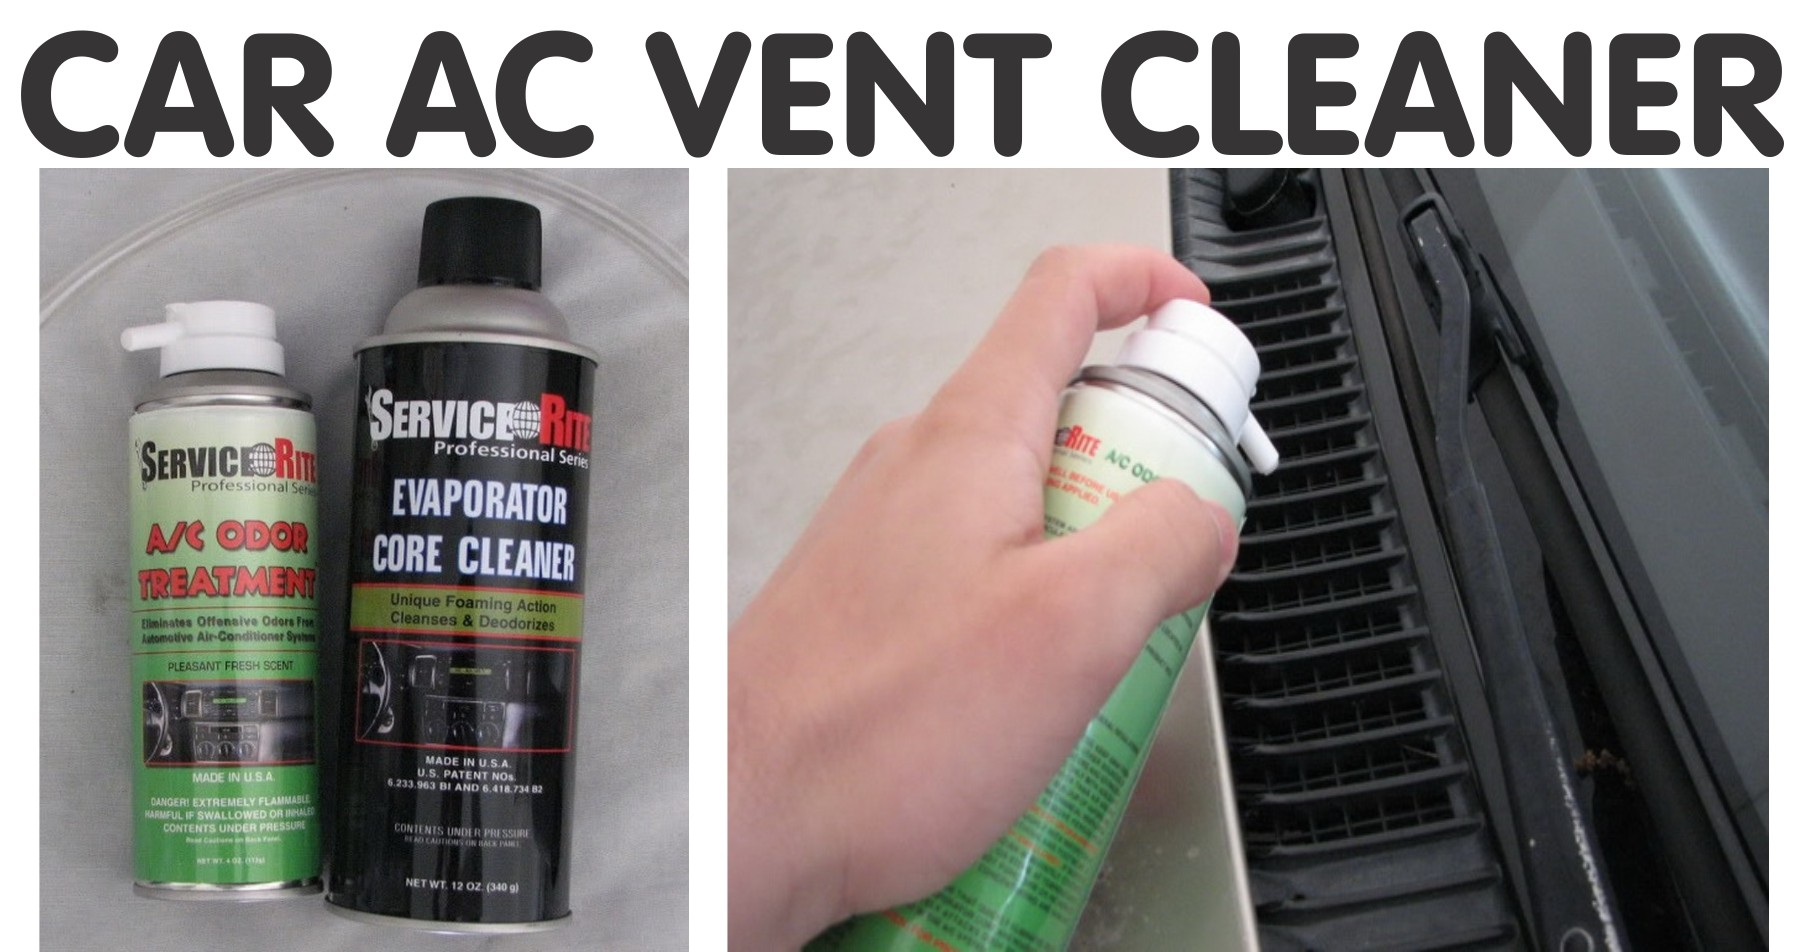 How To Get The Bad Smell Out Of Car Ac Vent System Diy 2007 Ford Edge Drain Location A C Odor Cleaner Spray For Your